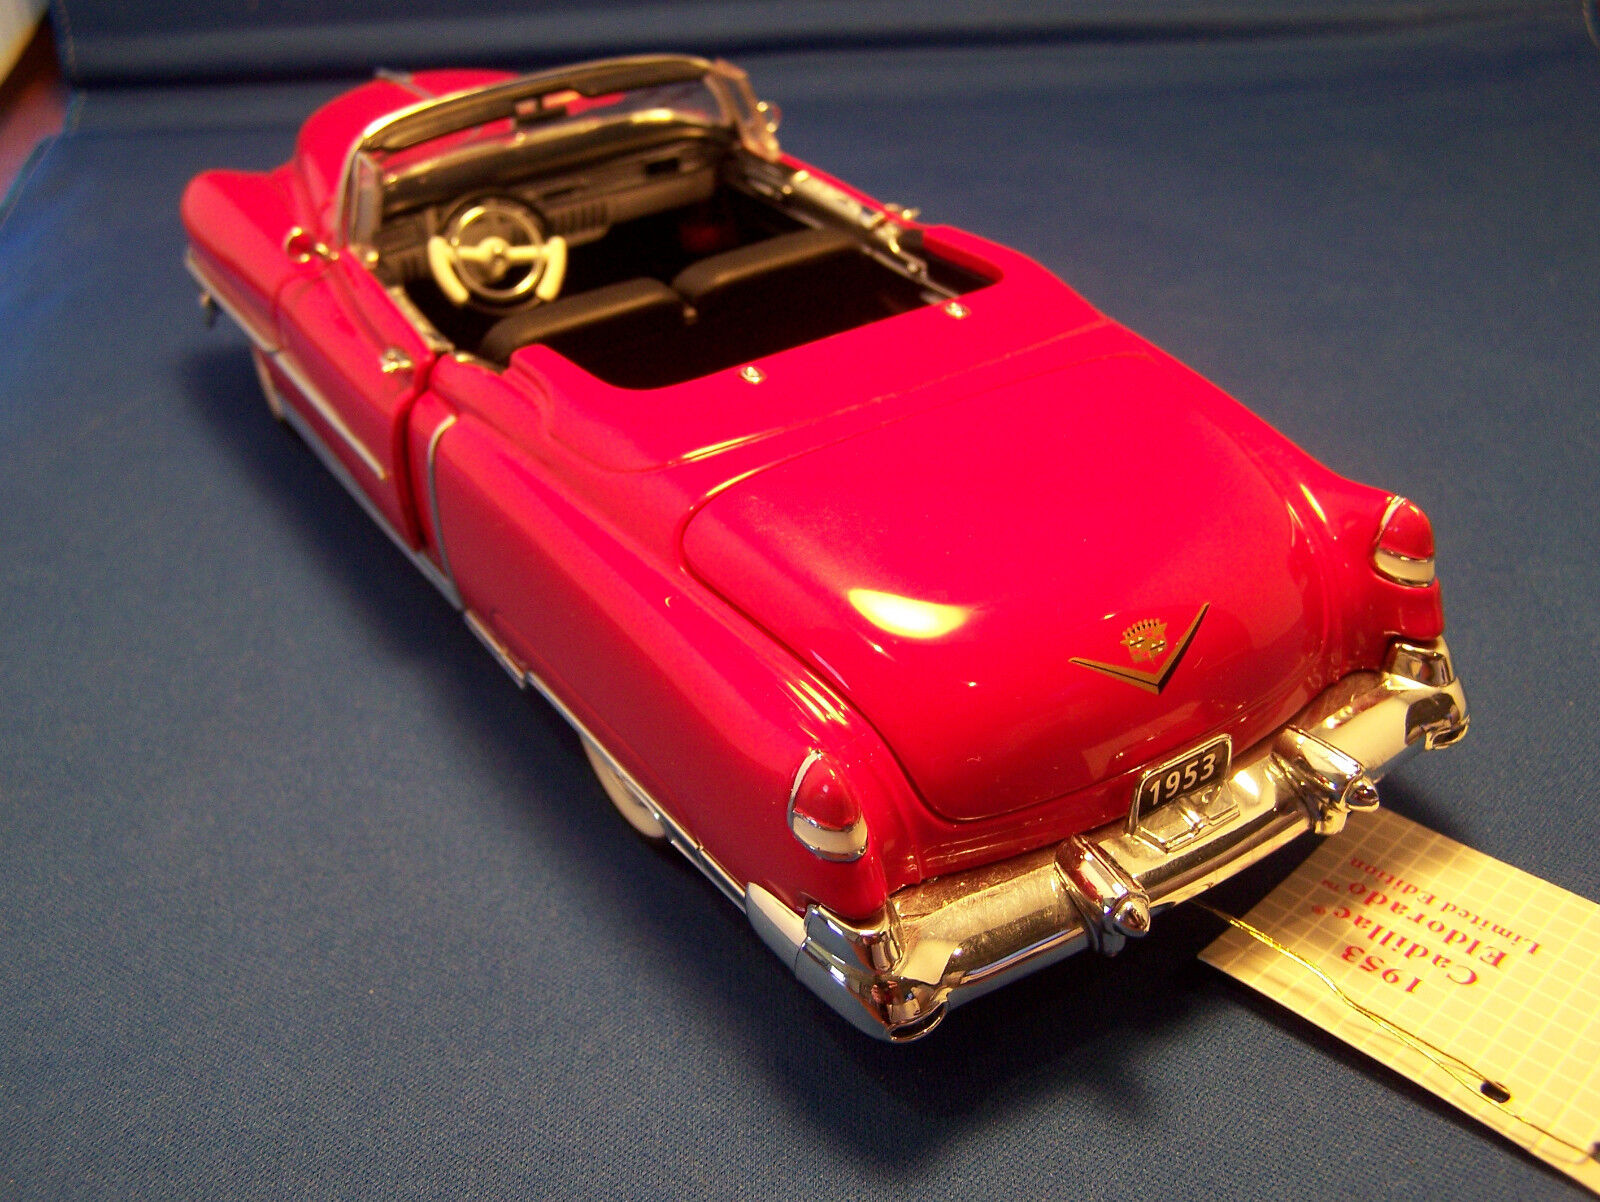 FRANKLIN MINT 1953  RED CADILLAC CADILLAC CADILLAC ELDORADO CONgreenIBLE MINT IN THE BOX LIMITED eab90c